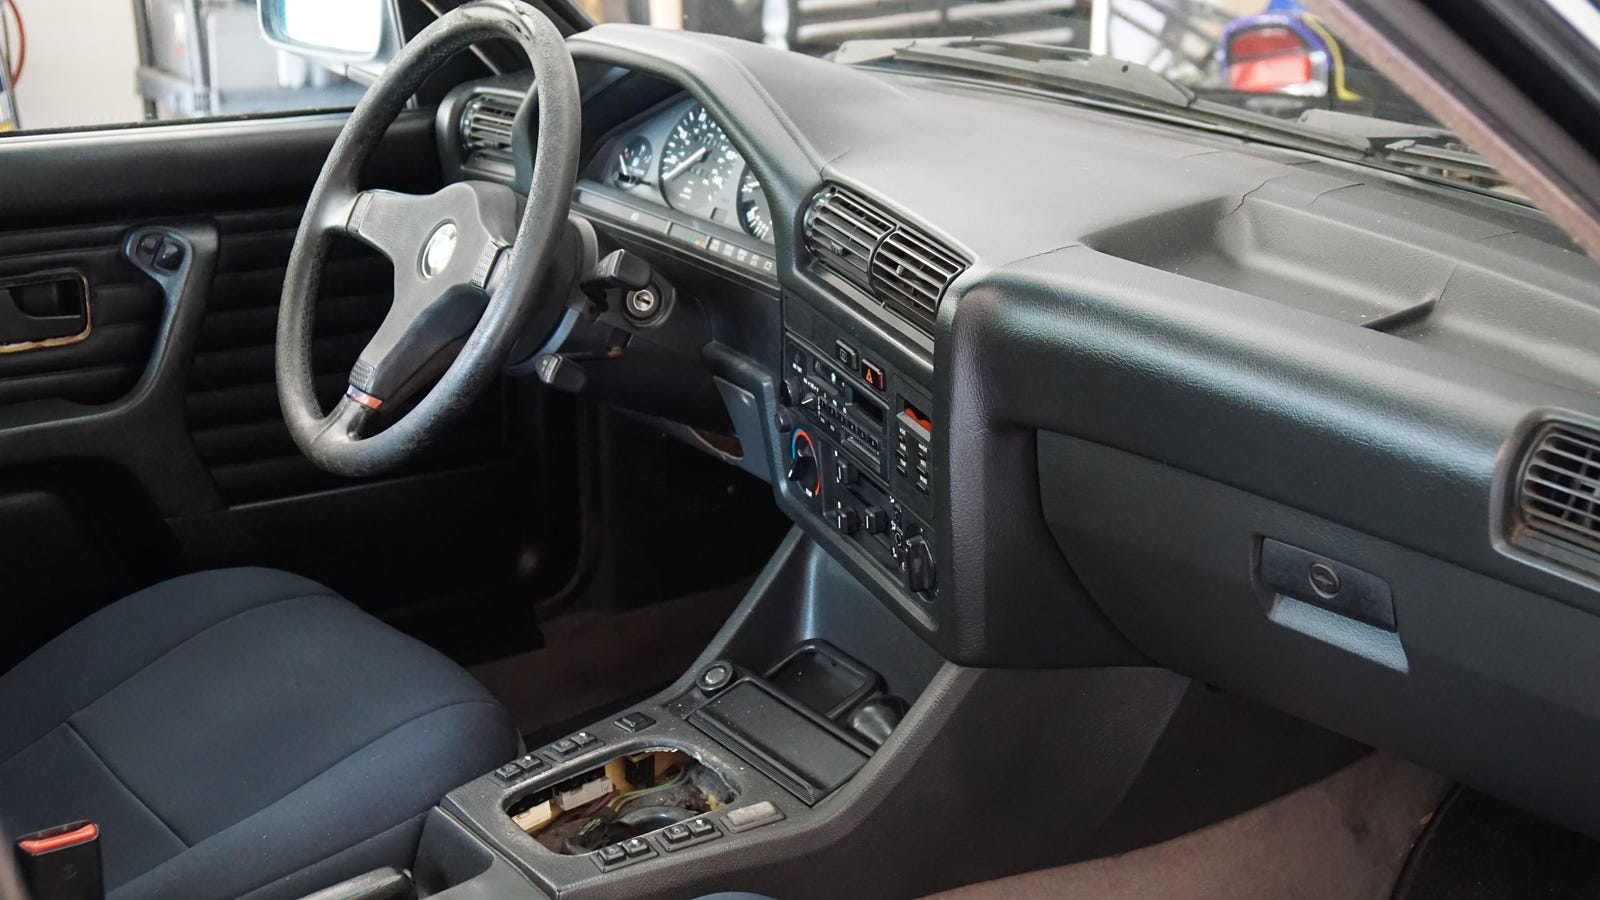 An interior so rough you might not even notice the shifter is missing.